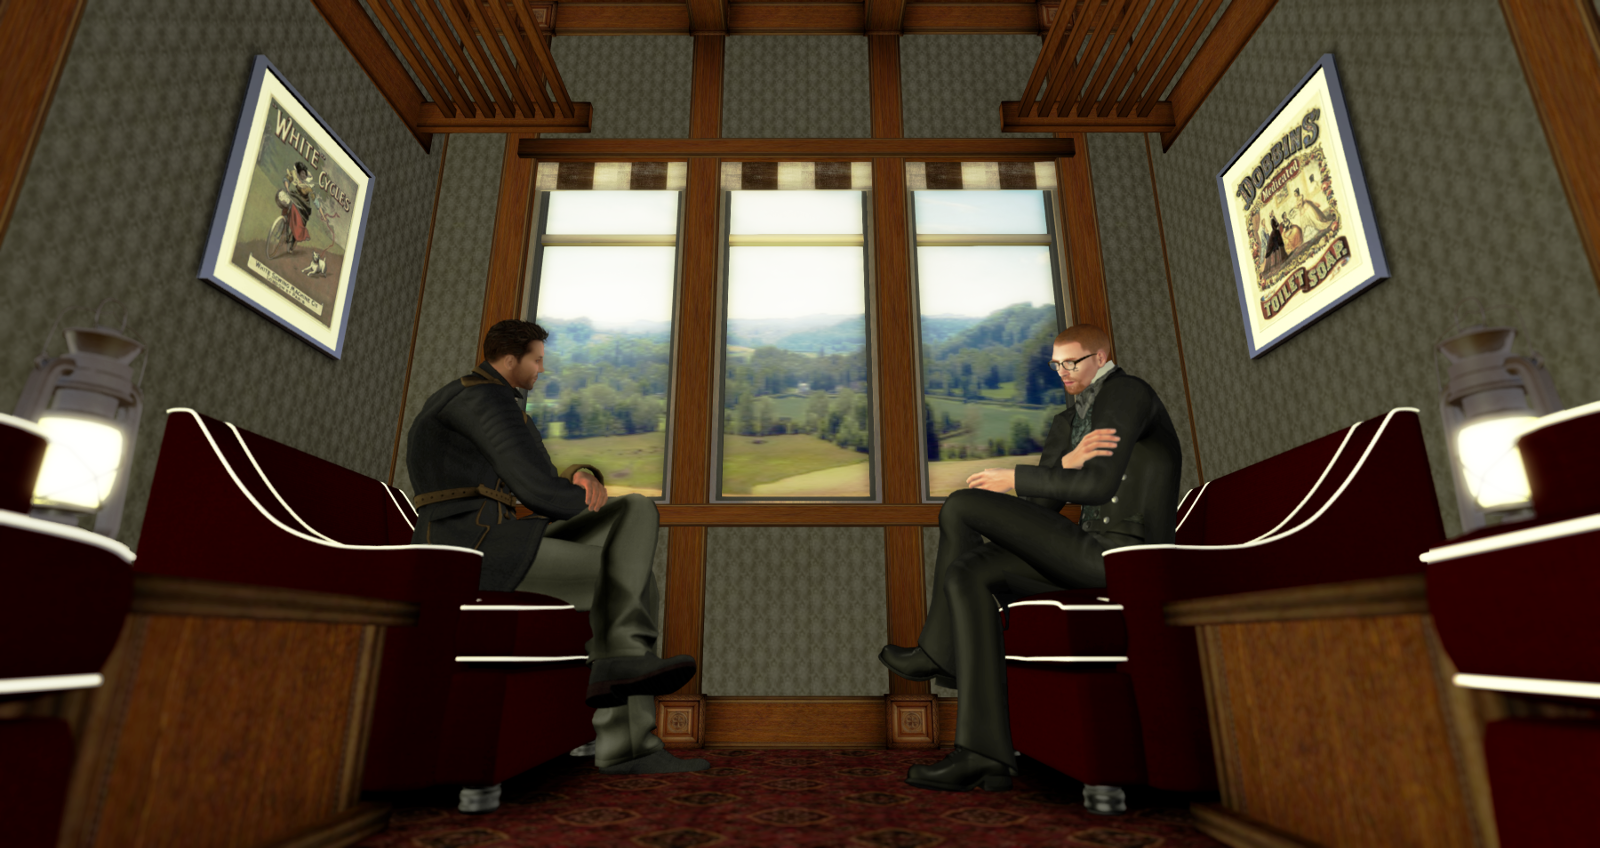 Gentlemen talk in the saloon car